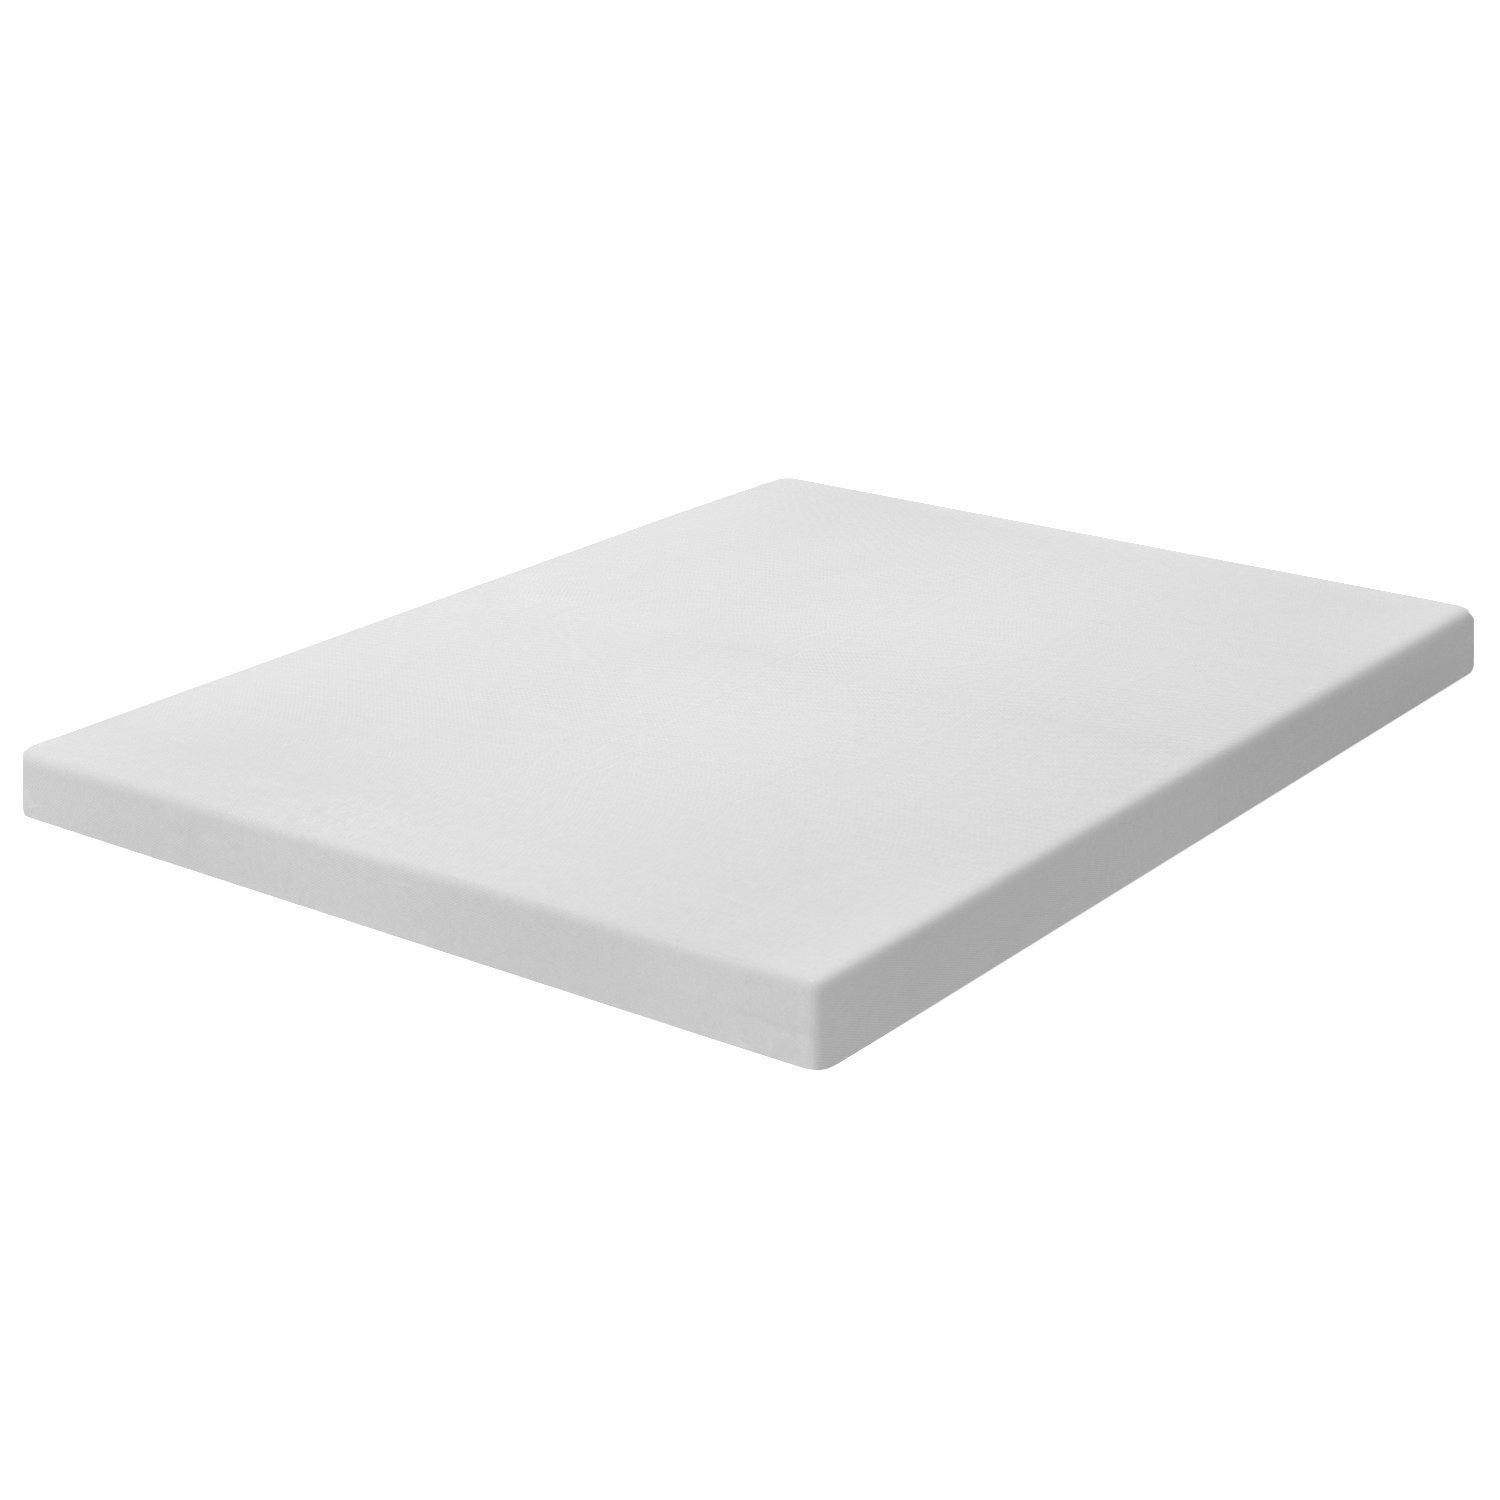 amazon home design bed inch dp kitchen deluxe mattress queen comfort egg foam topper com total king crate memory